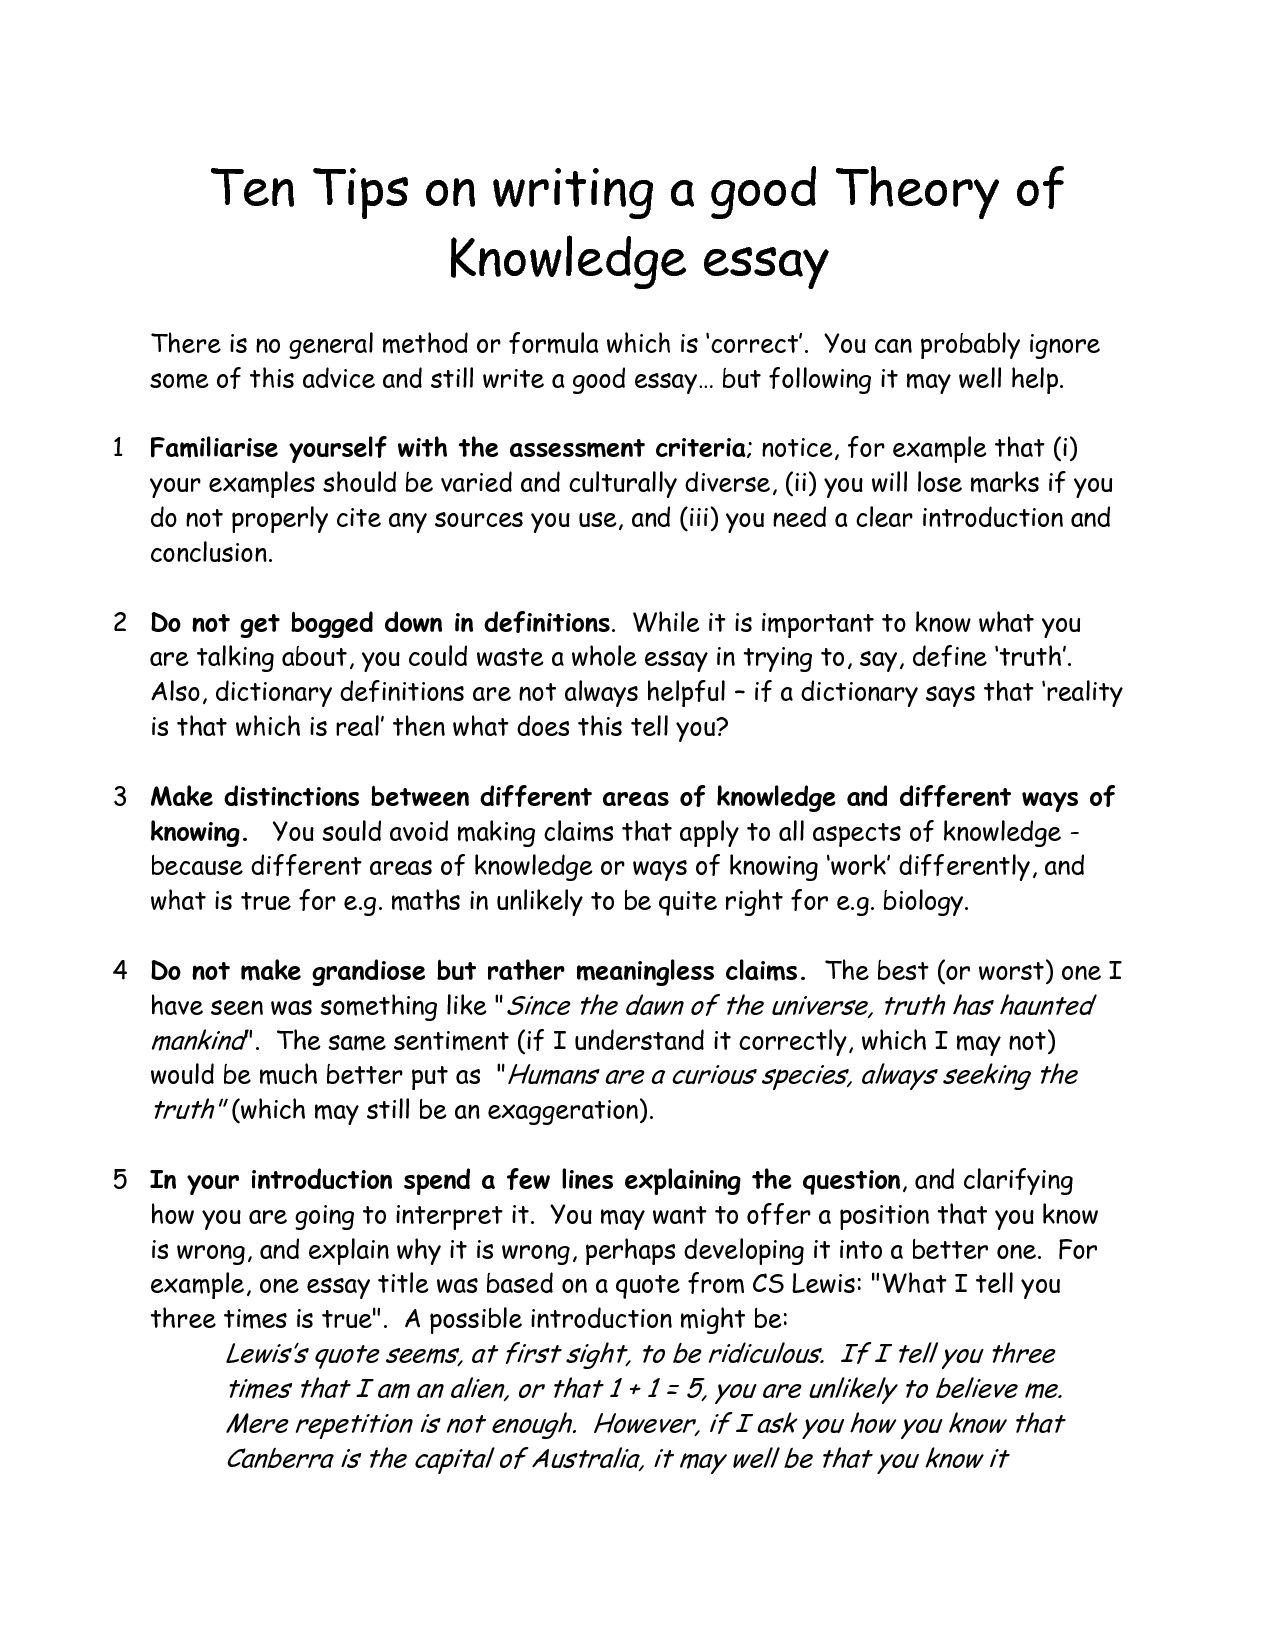 english coursework help a level how to outline a research paper  doc simple essay example easy essay samples popular university scholarship essay samples essay school essay samples